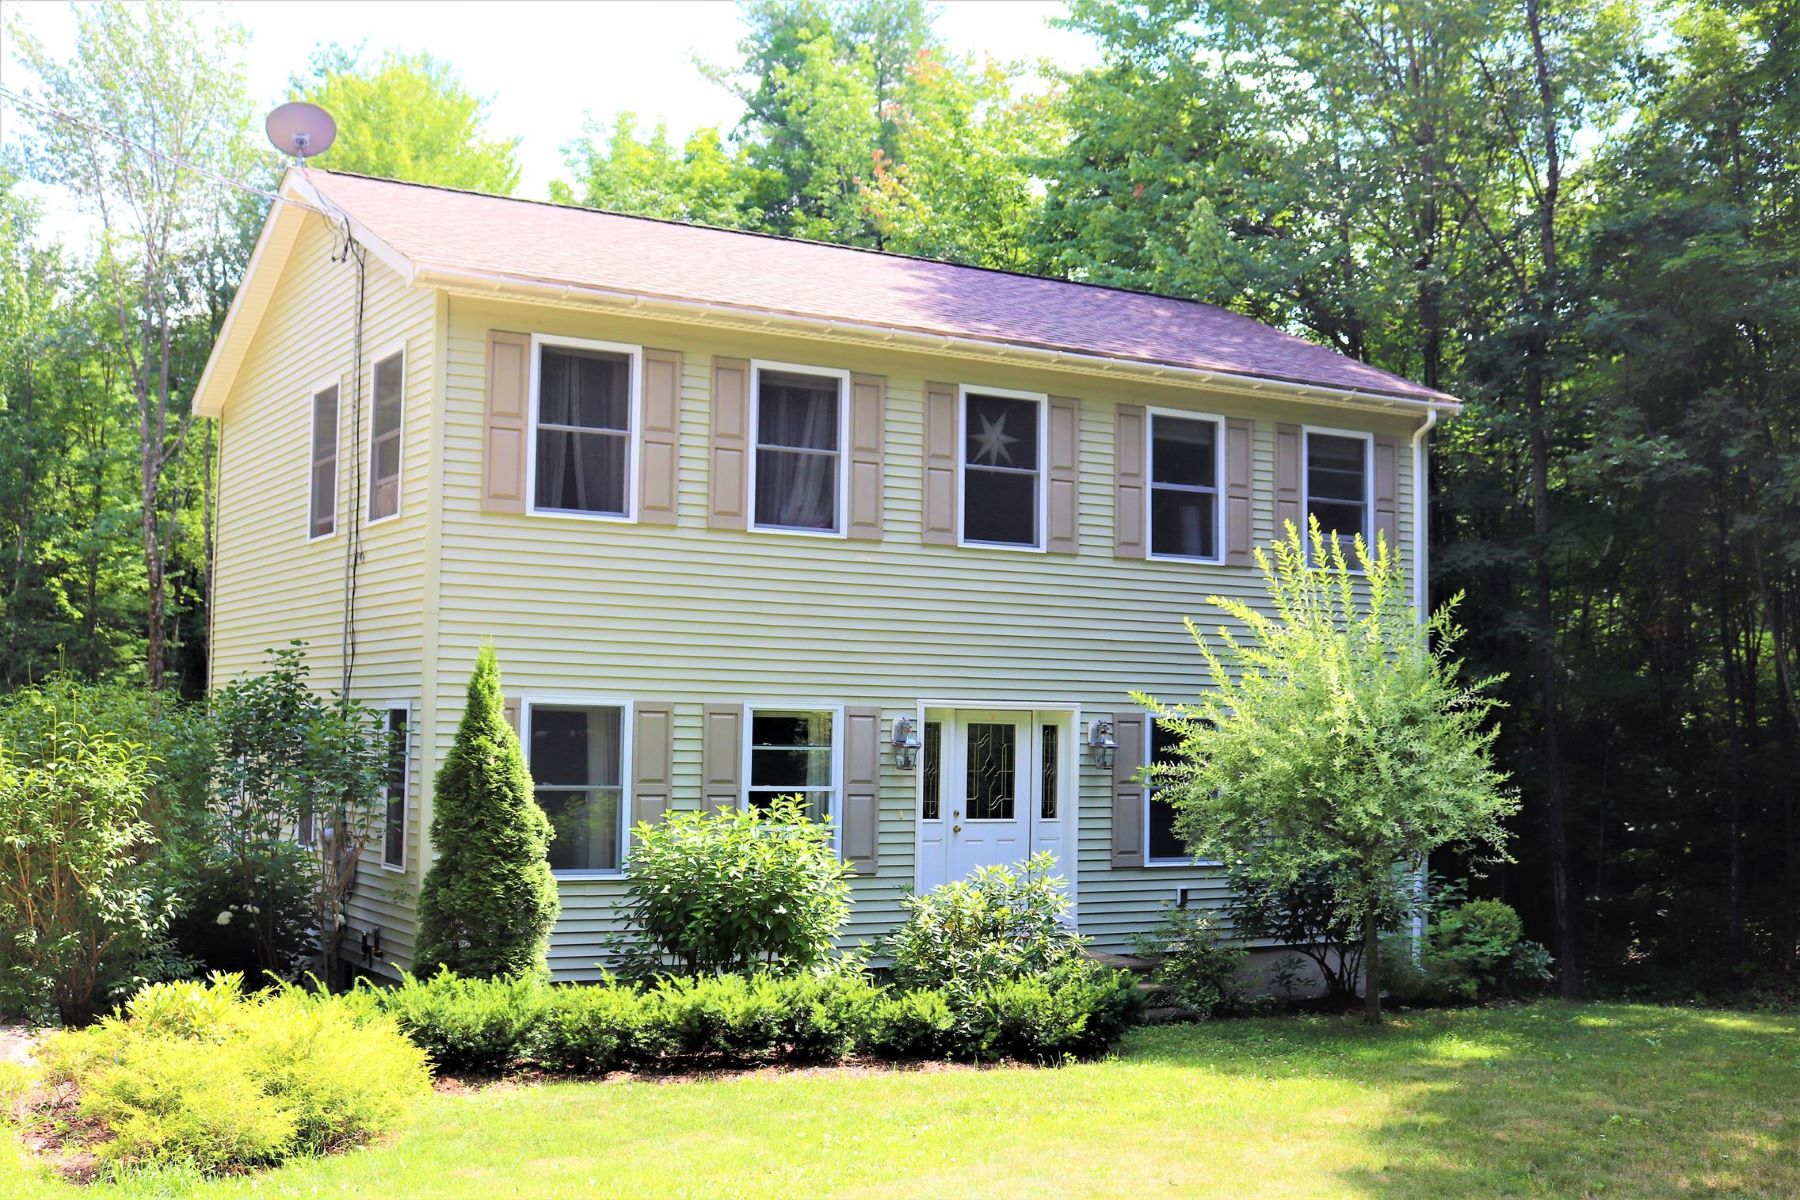 Single Family Home for Sale at 71 Fox Chase Road 71 Fox Chase Rd Sutton, New Hampshire 03273 United States